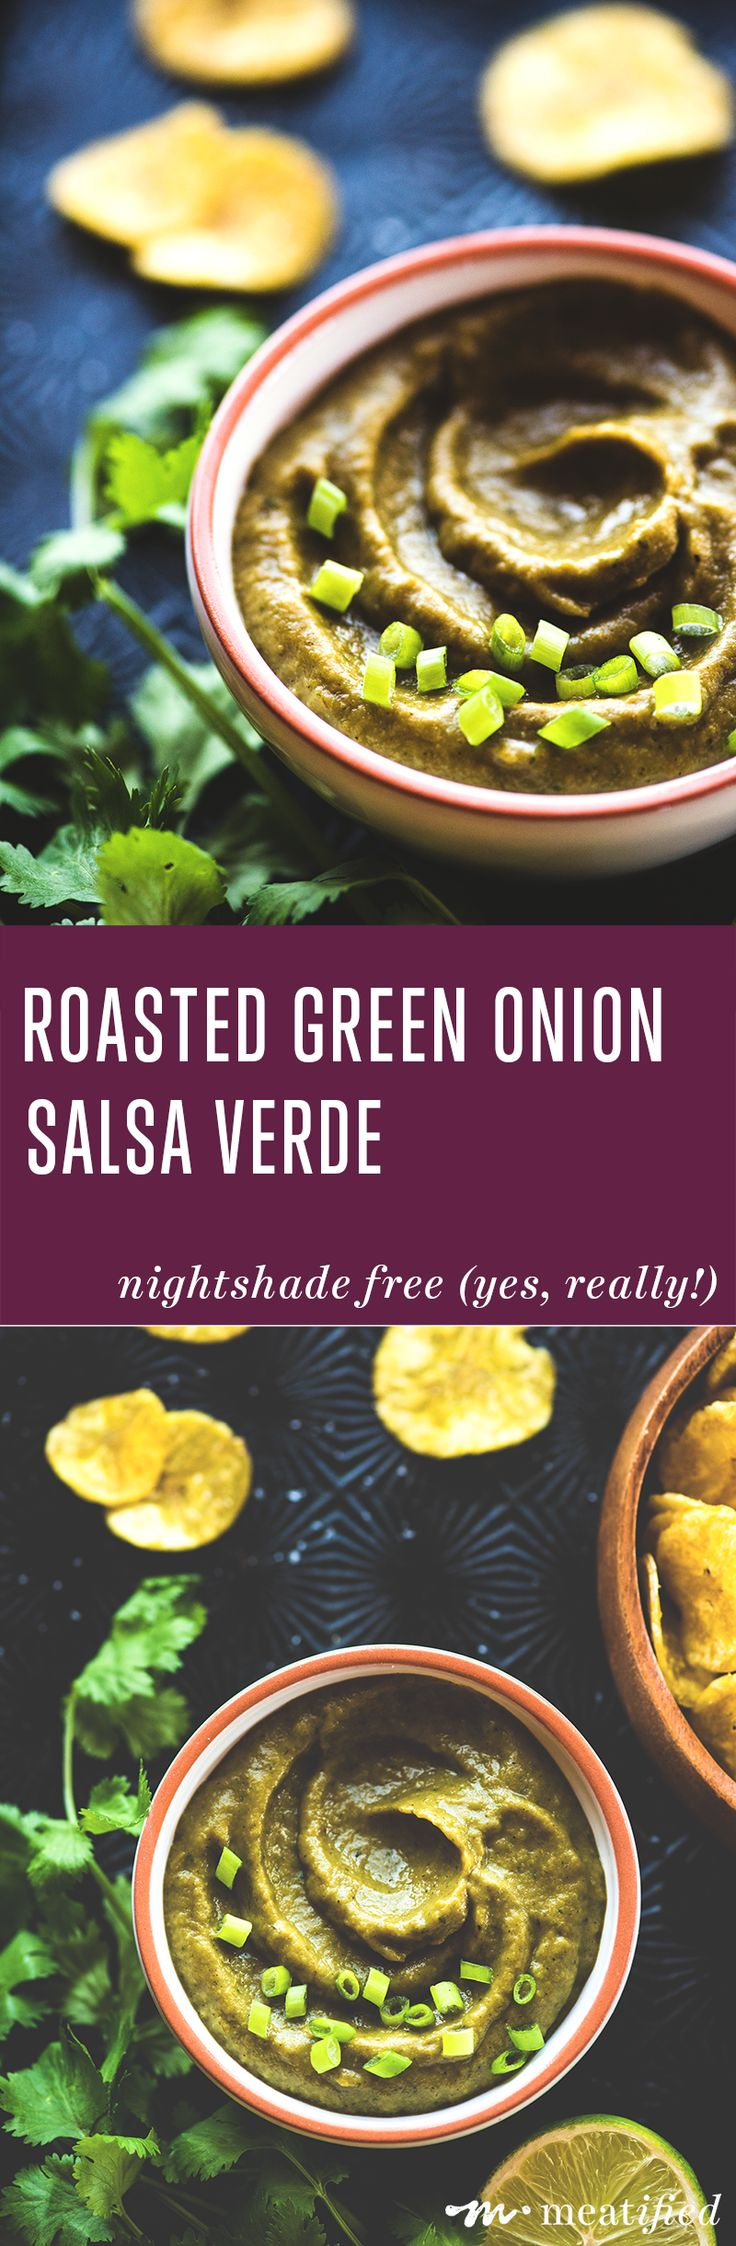 Yes, really. This Roasted Green Onion Salsa Verde from http://meatified.com is nightshade free! Sweet & smoky, flavor filled and scoopable, you'll want to add this to so many meals!